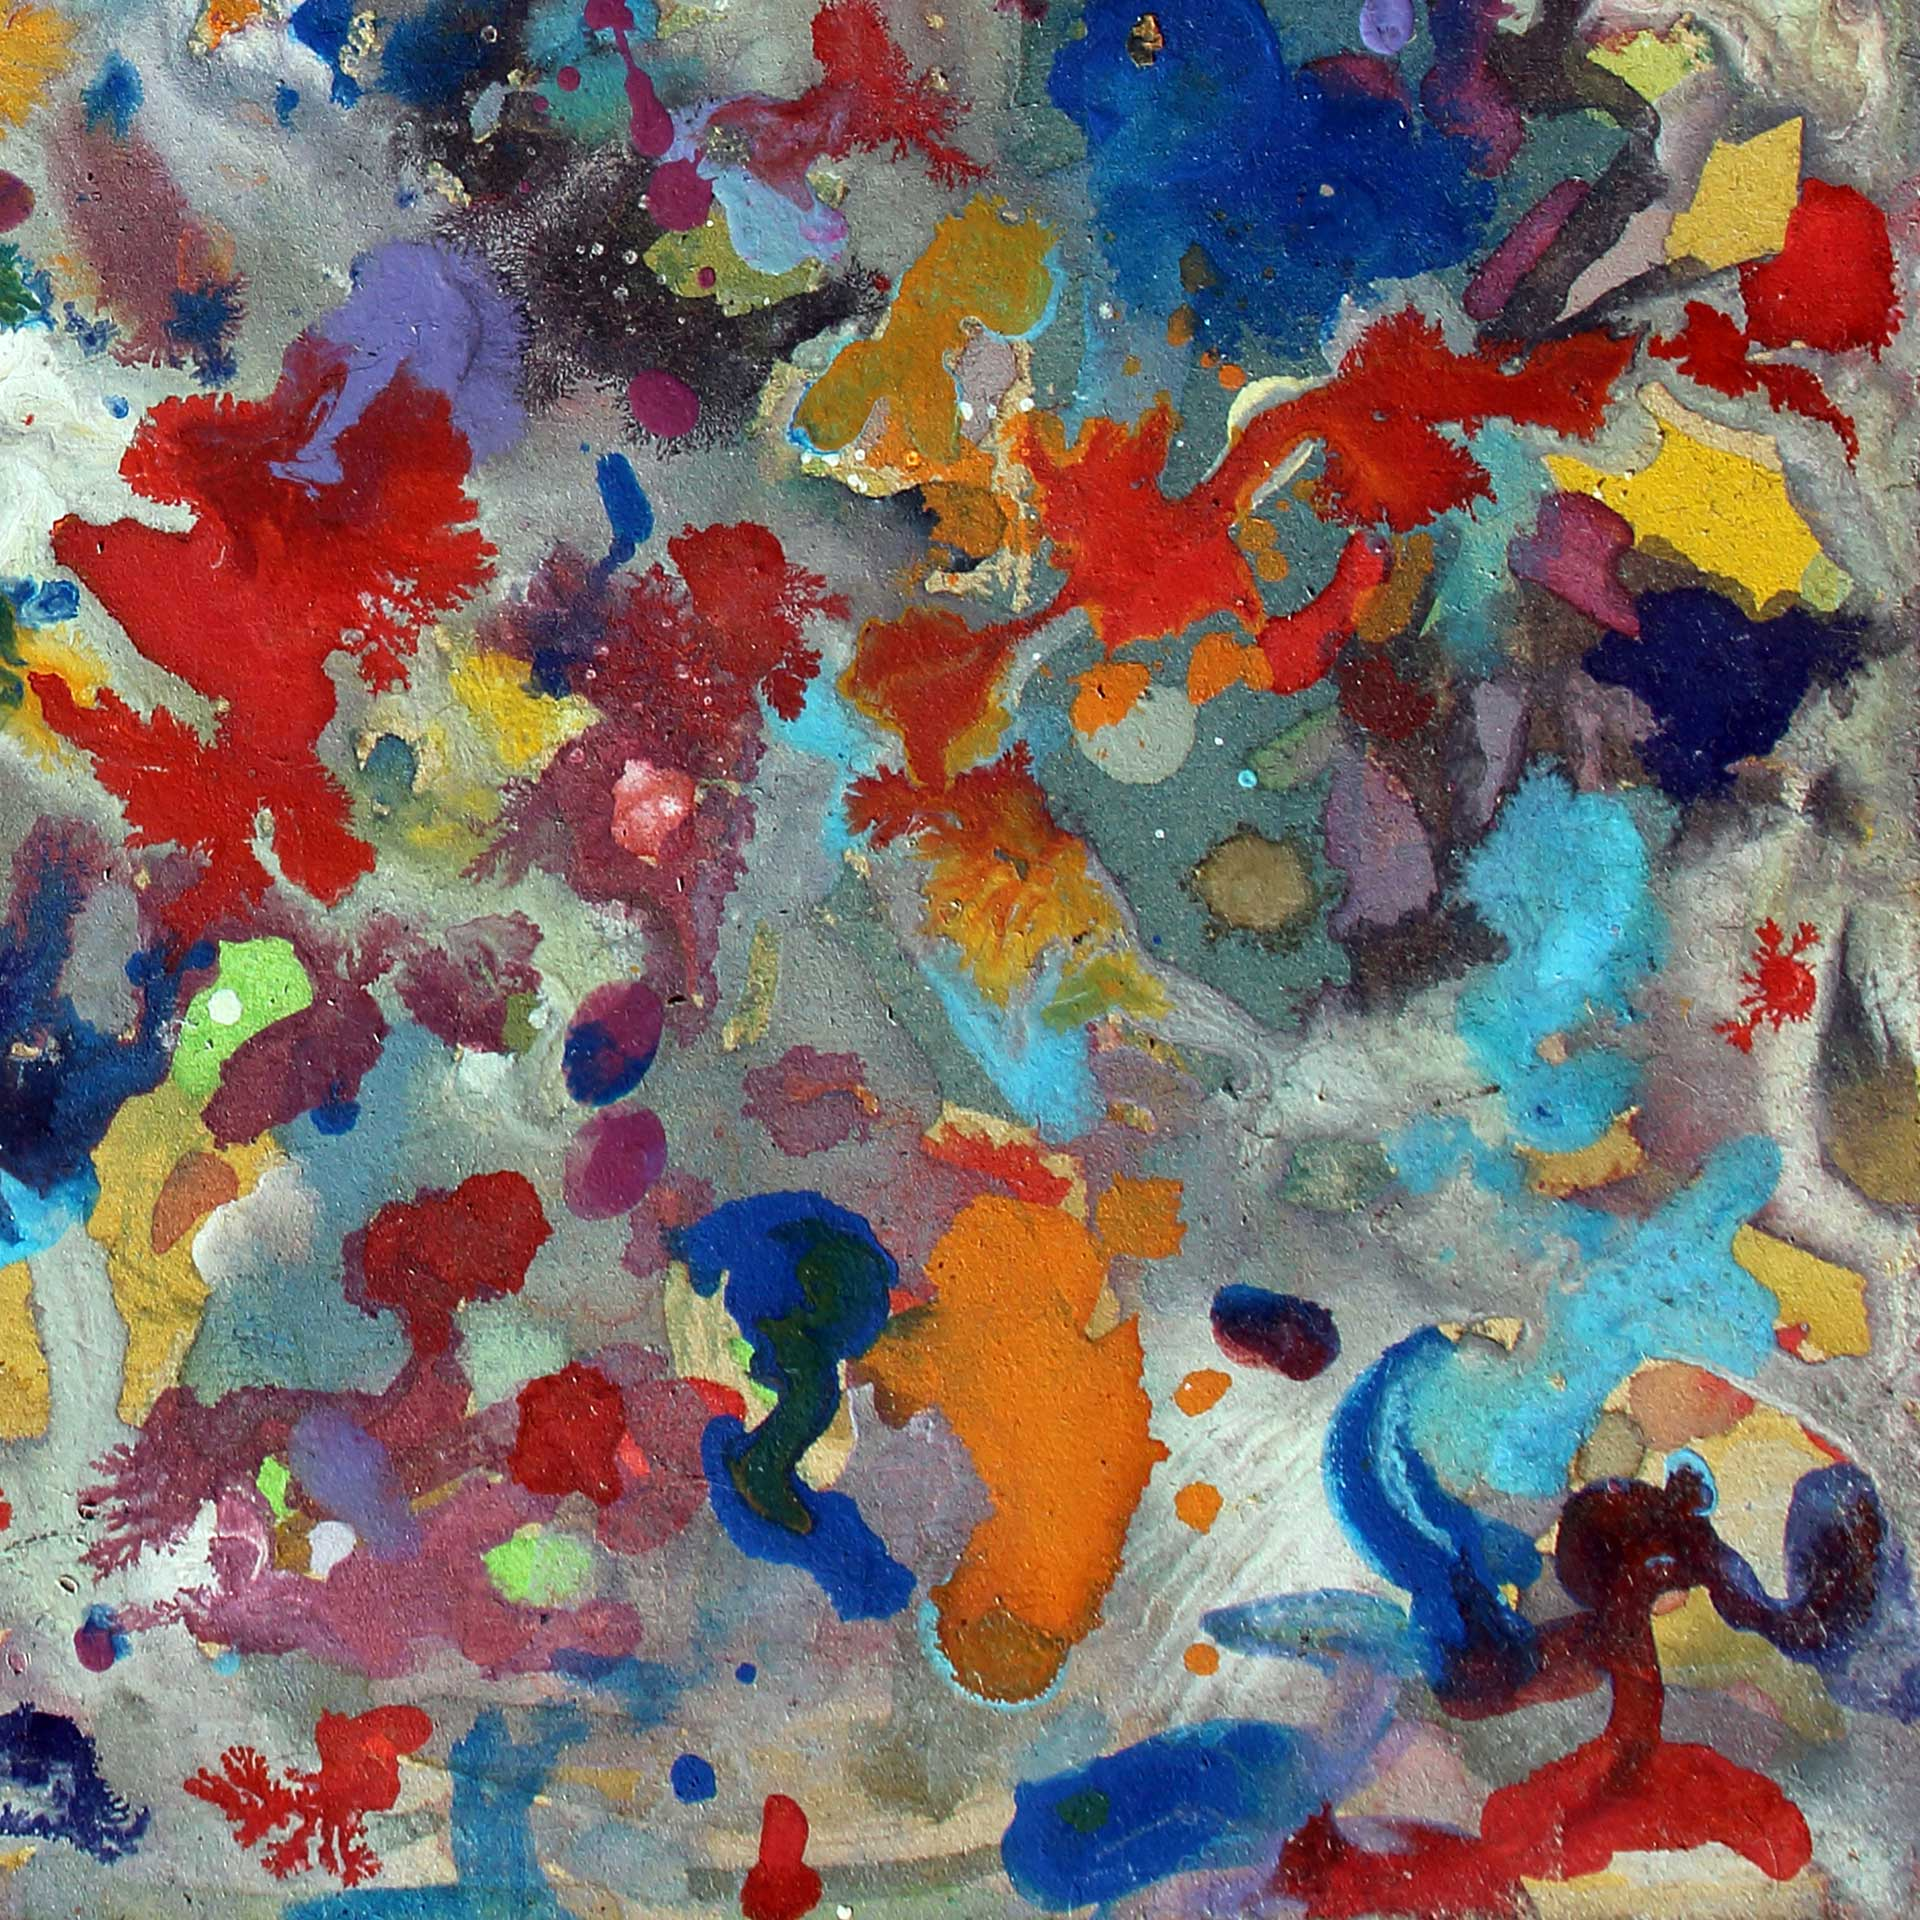 Abstract expressionism painting - Crowd of spectators at a football match - Detail 2